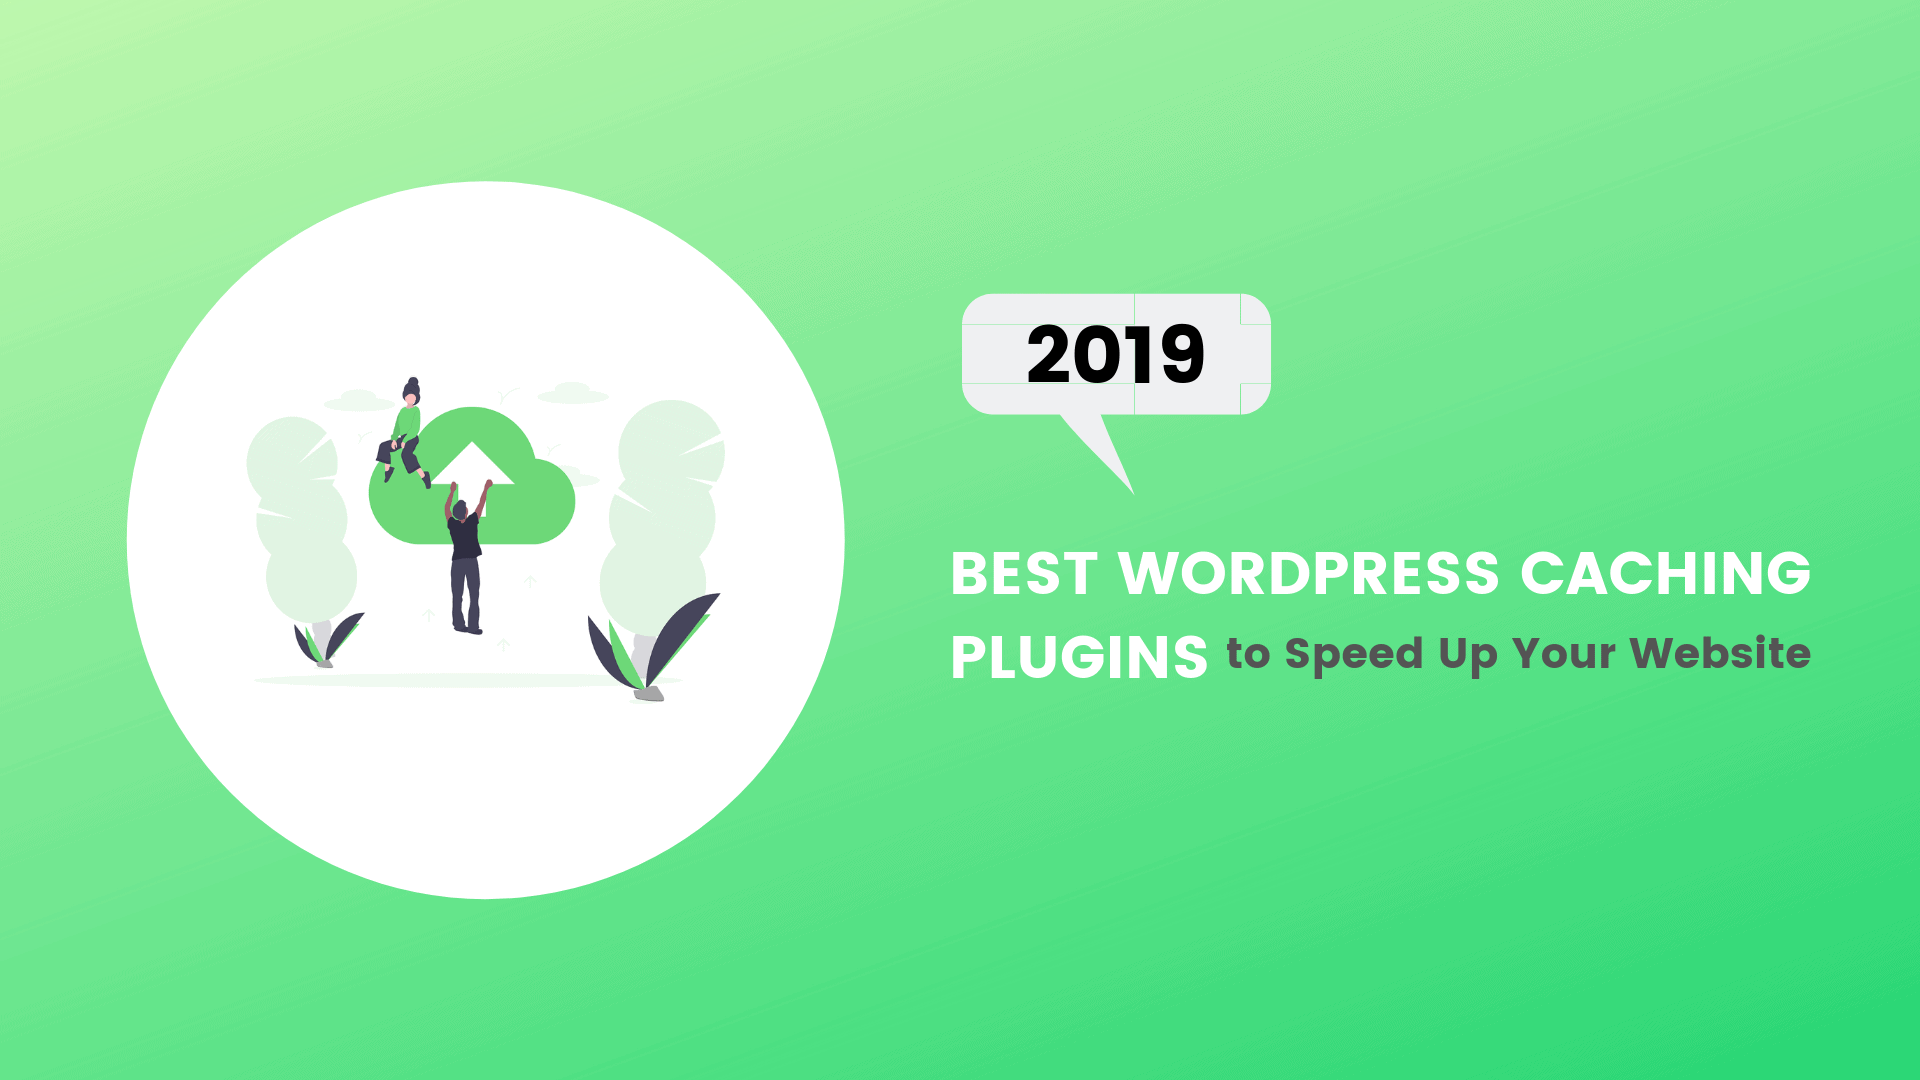 10 Best WordPress Caching Plugins to Speed Up Your Website